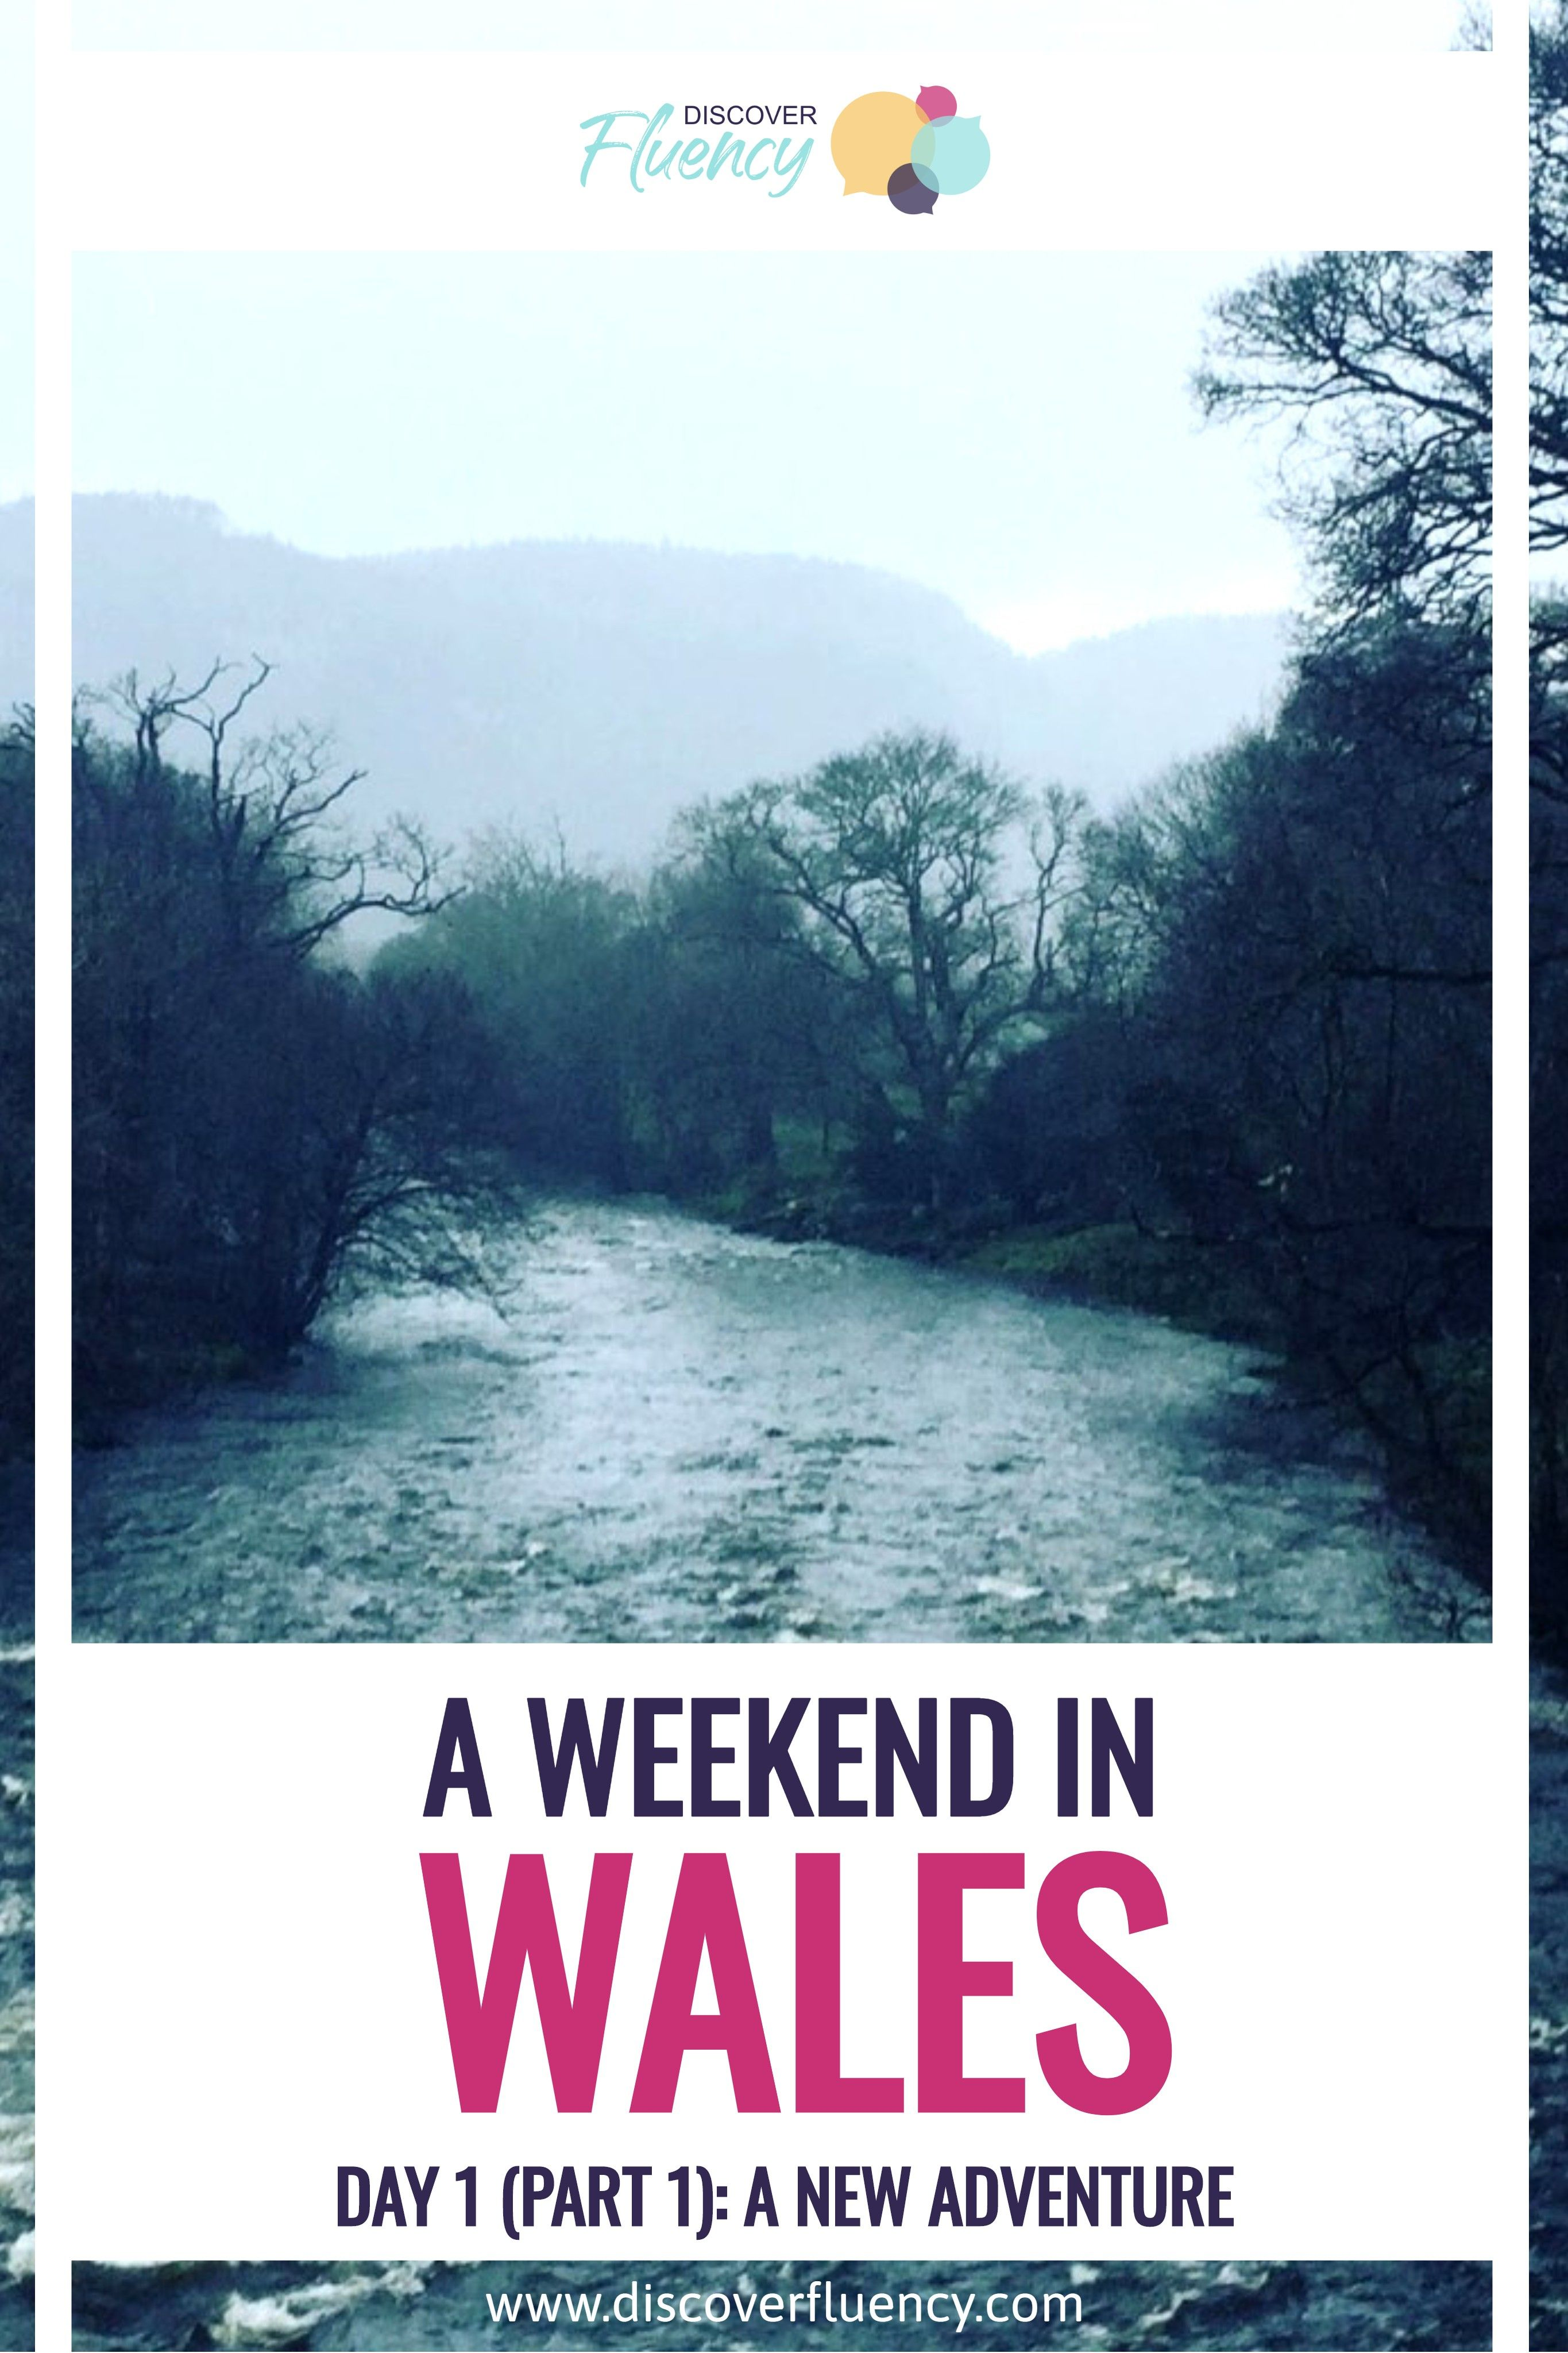 A weekend in Wales - Day 1 - A new adventure